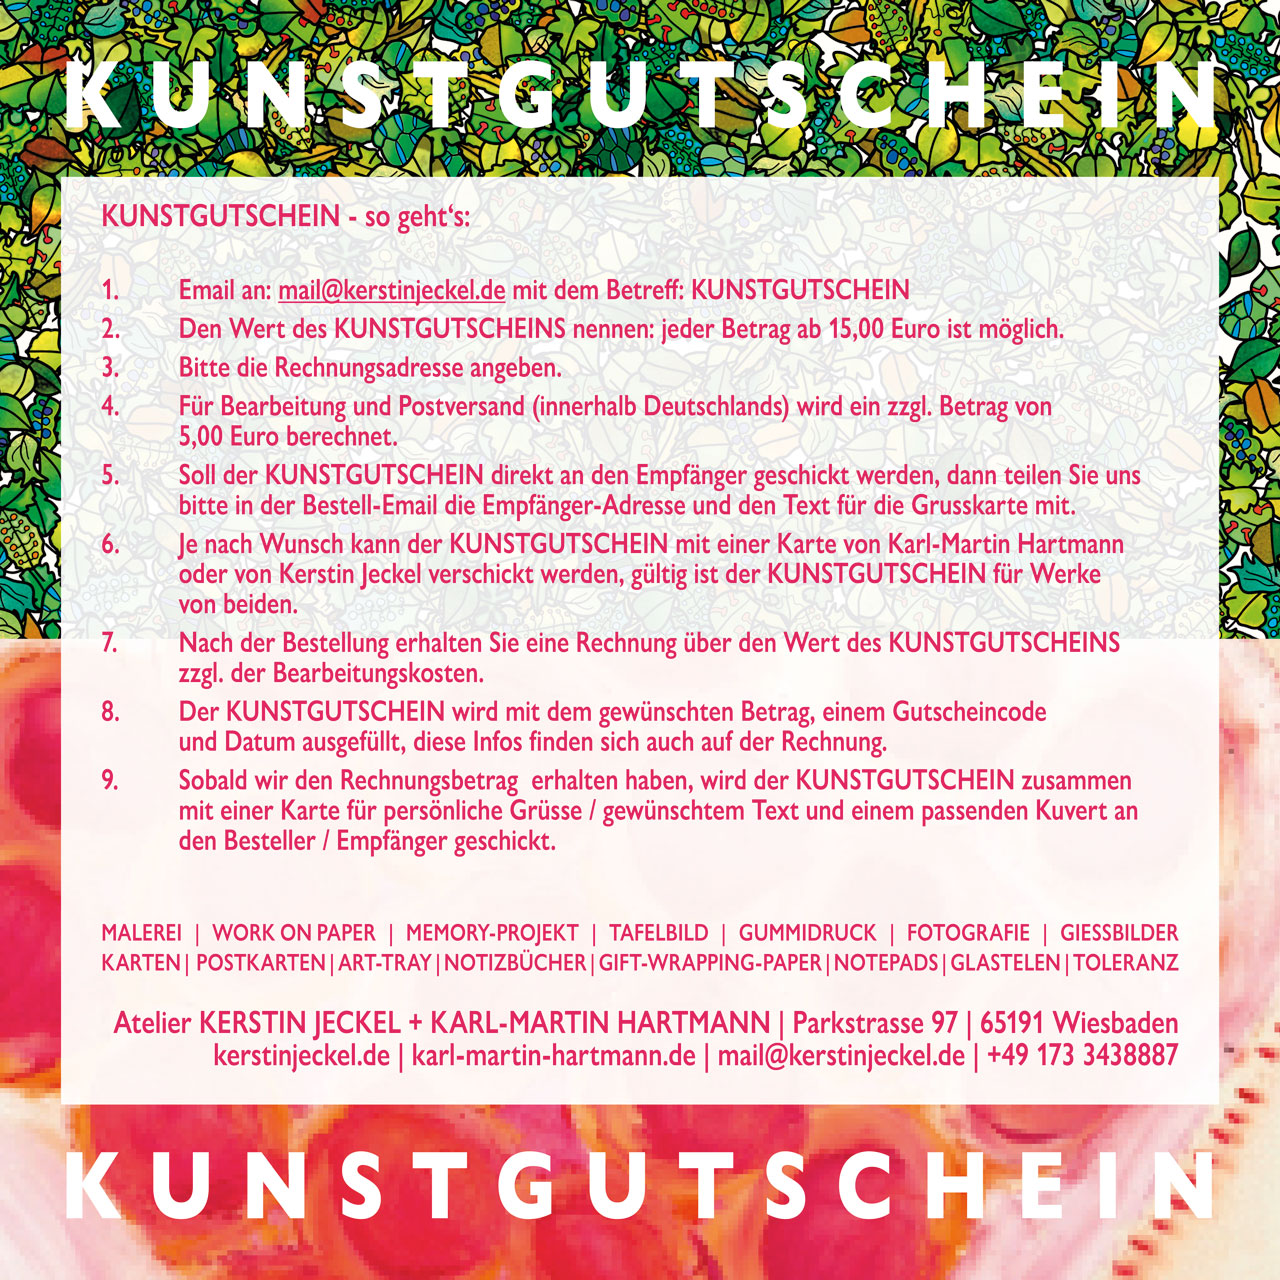 KUNSTGUTSCHEIN | HOW TO DO